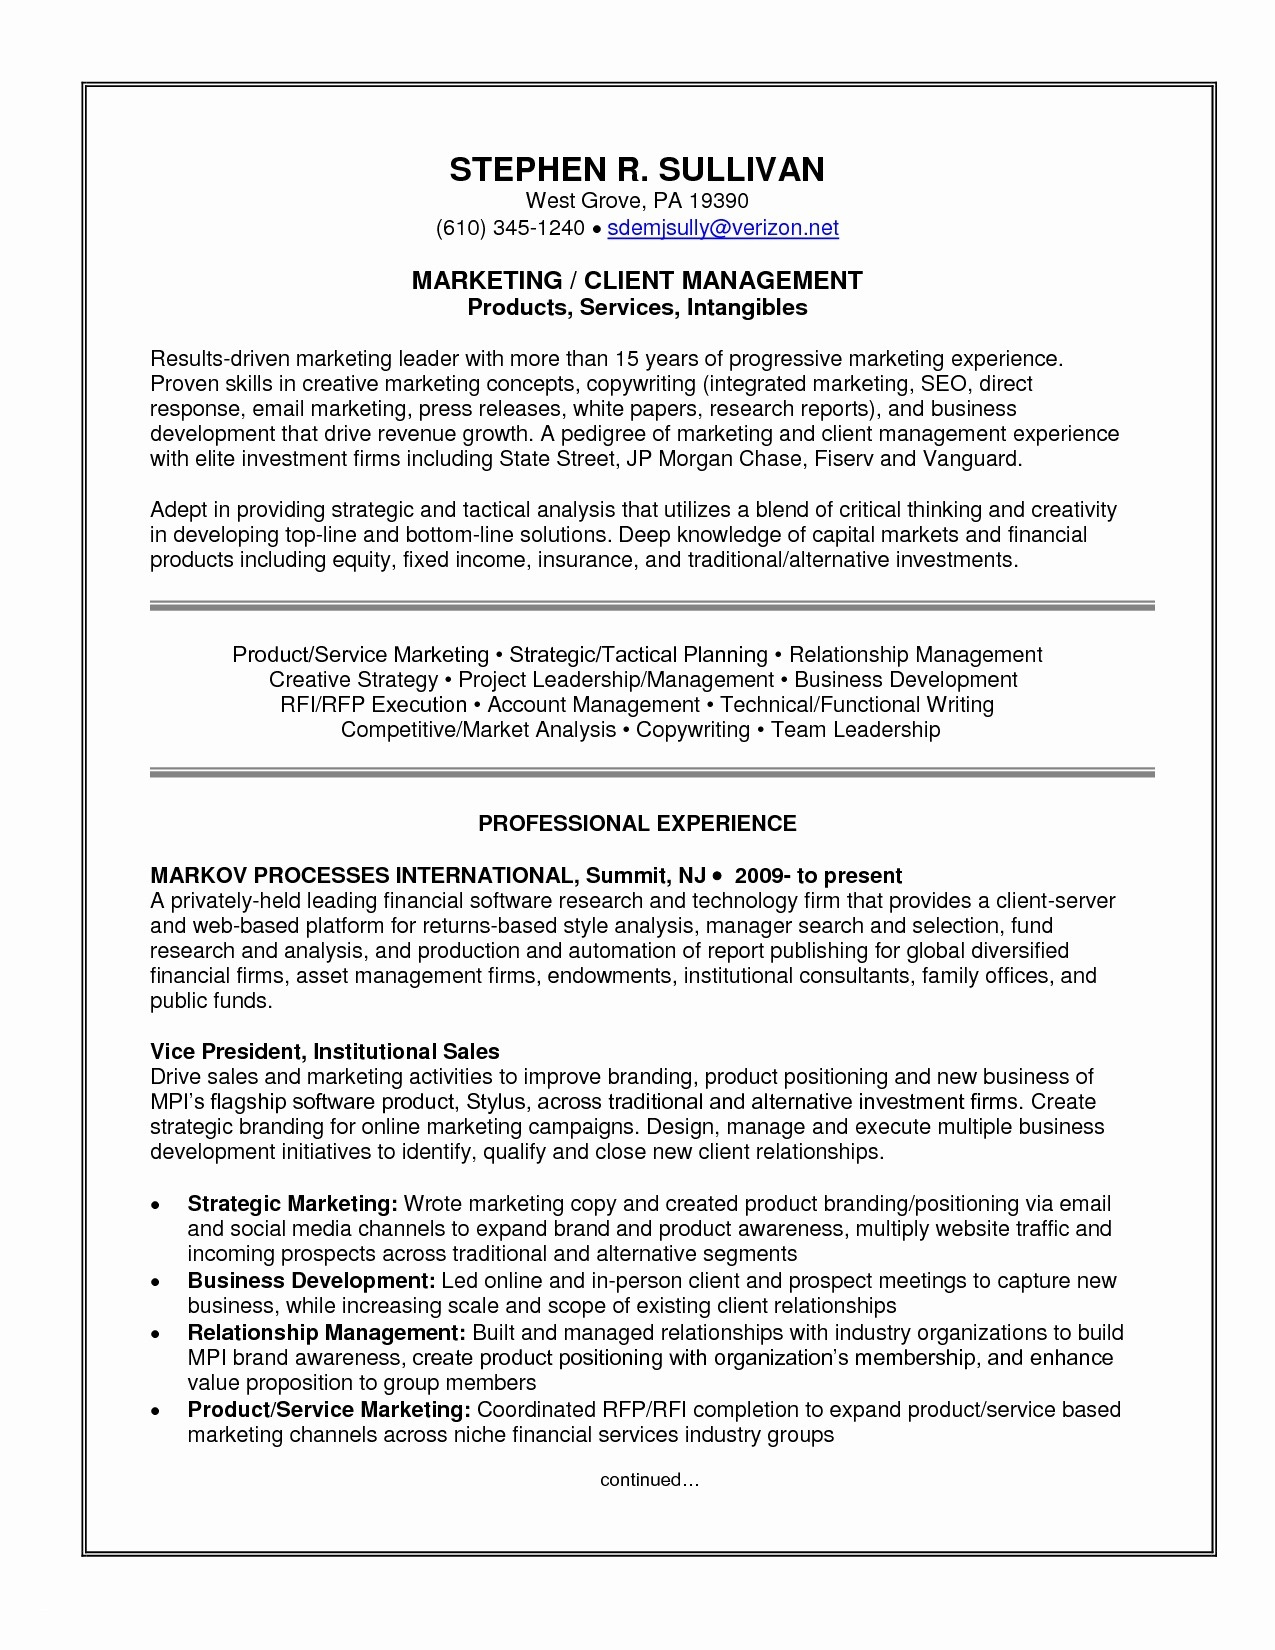 Car Salesman Resume - Change Career Objective Examples for Resumes Best Business